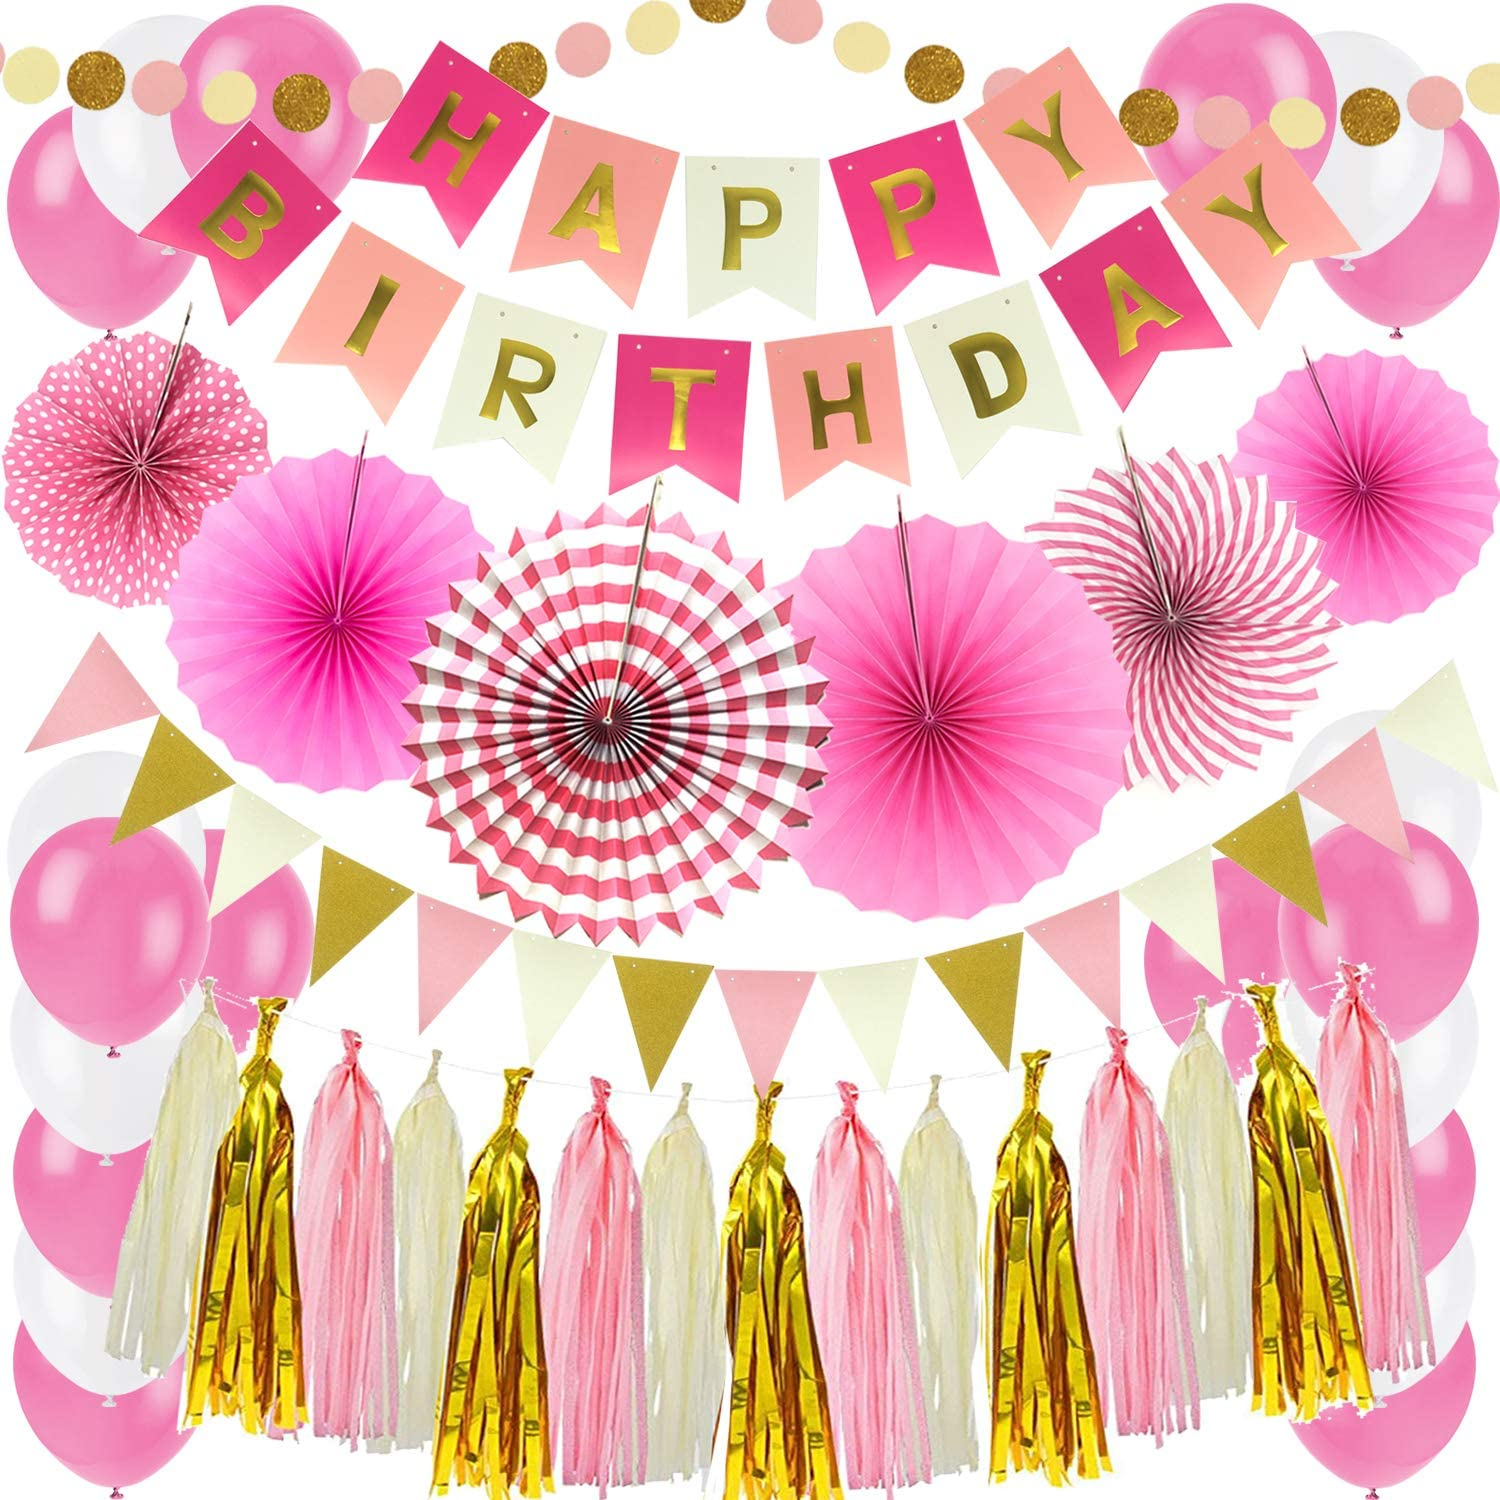 ZERODECO Birthday Party Decoration, Pink Happy Birthday Banner with Paper Fans Garland String Triangle Bunting Flag Tissue Tassel and Balloon for Bday Party Supplies Anniversary Decoration